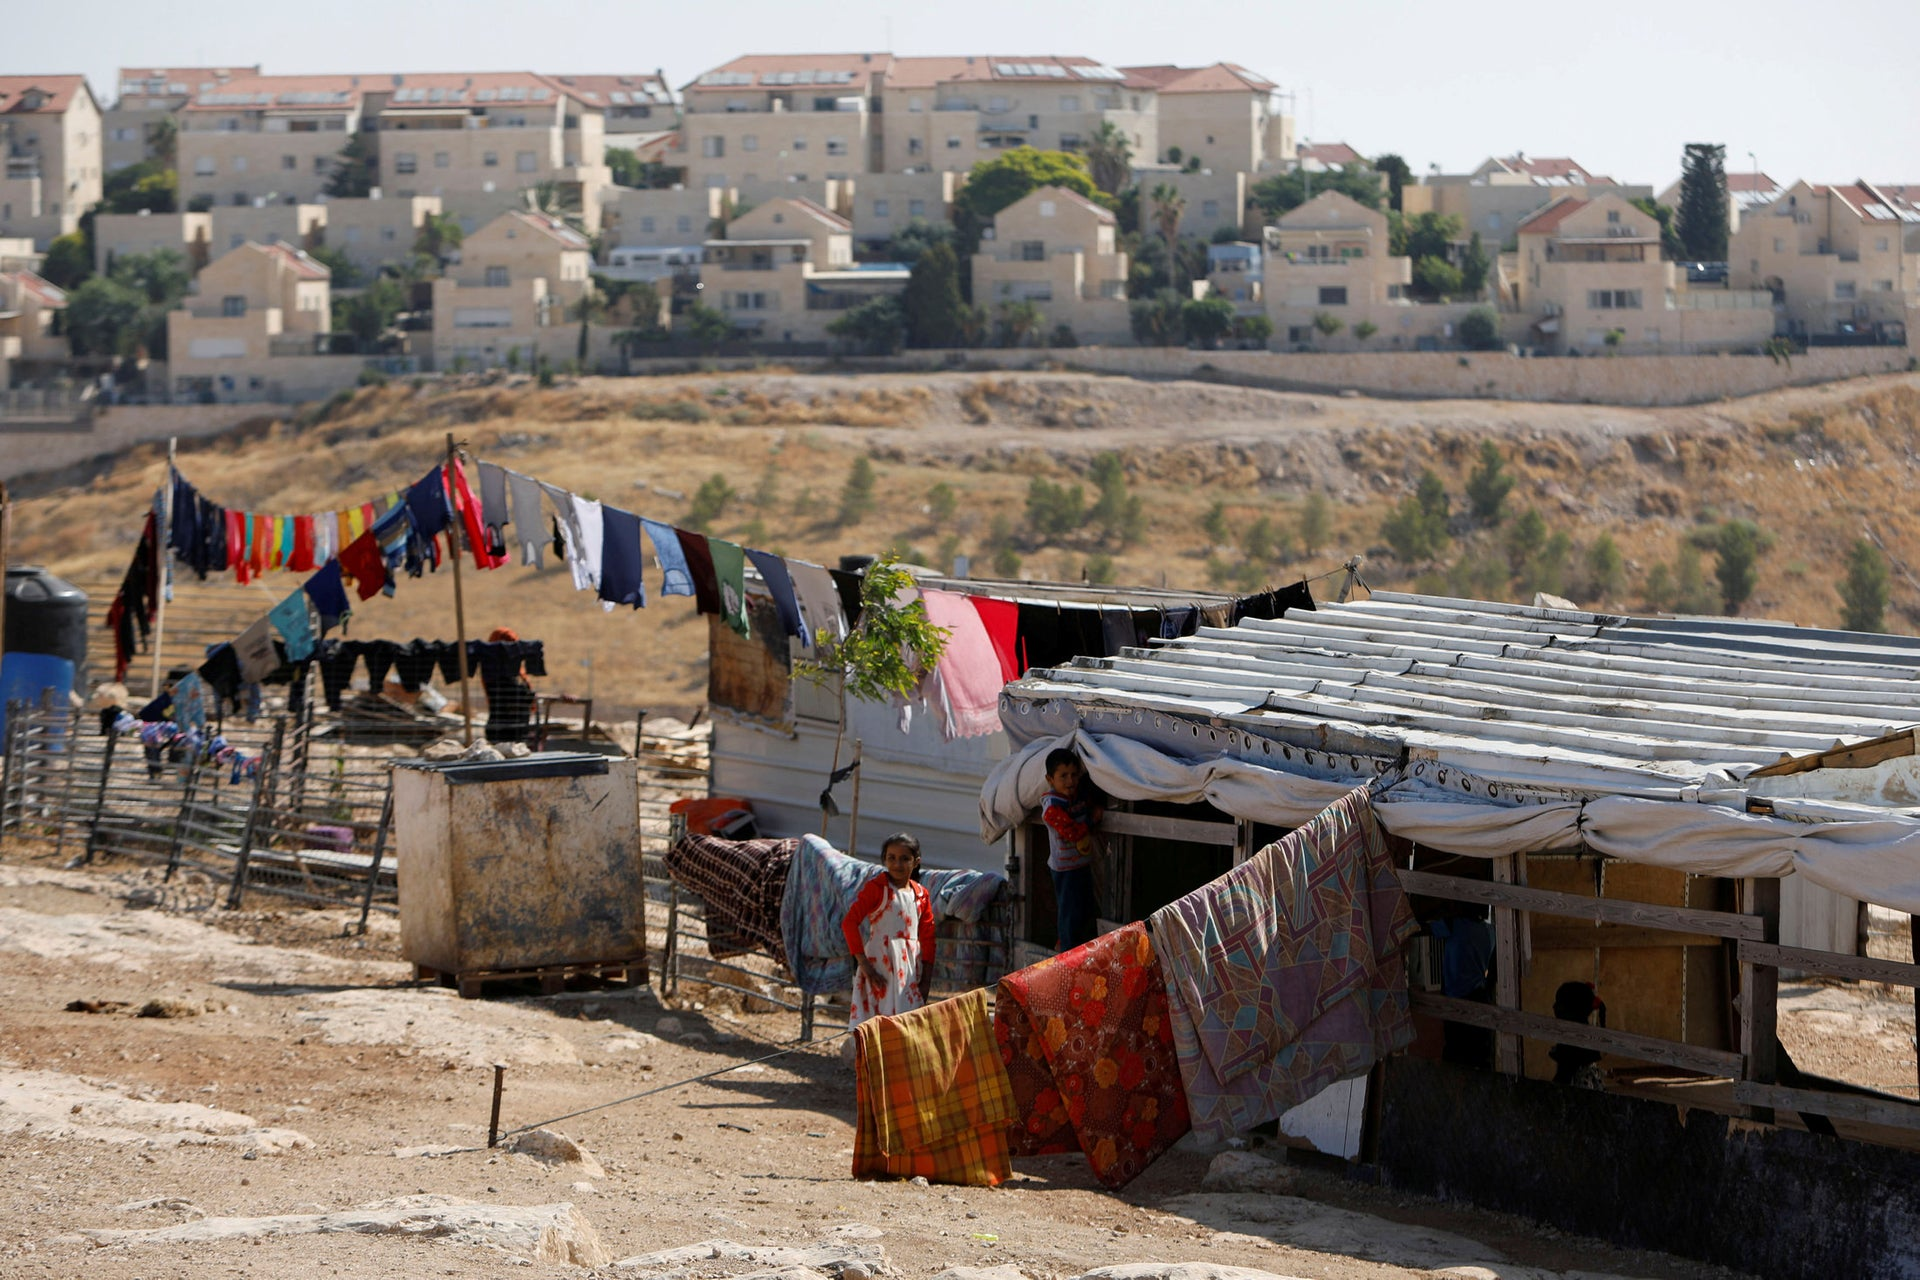 Palestinian children play outside their dwelling in al-Eizariya town with the Jewish settlement of Maale Adumim in the background